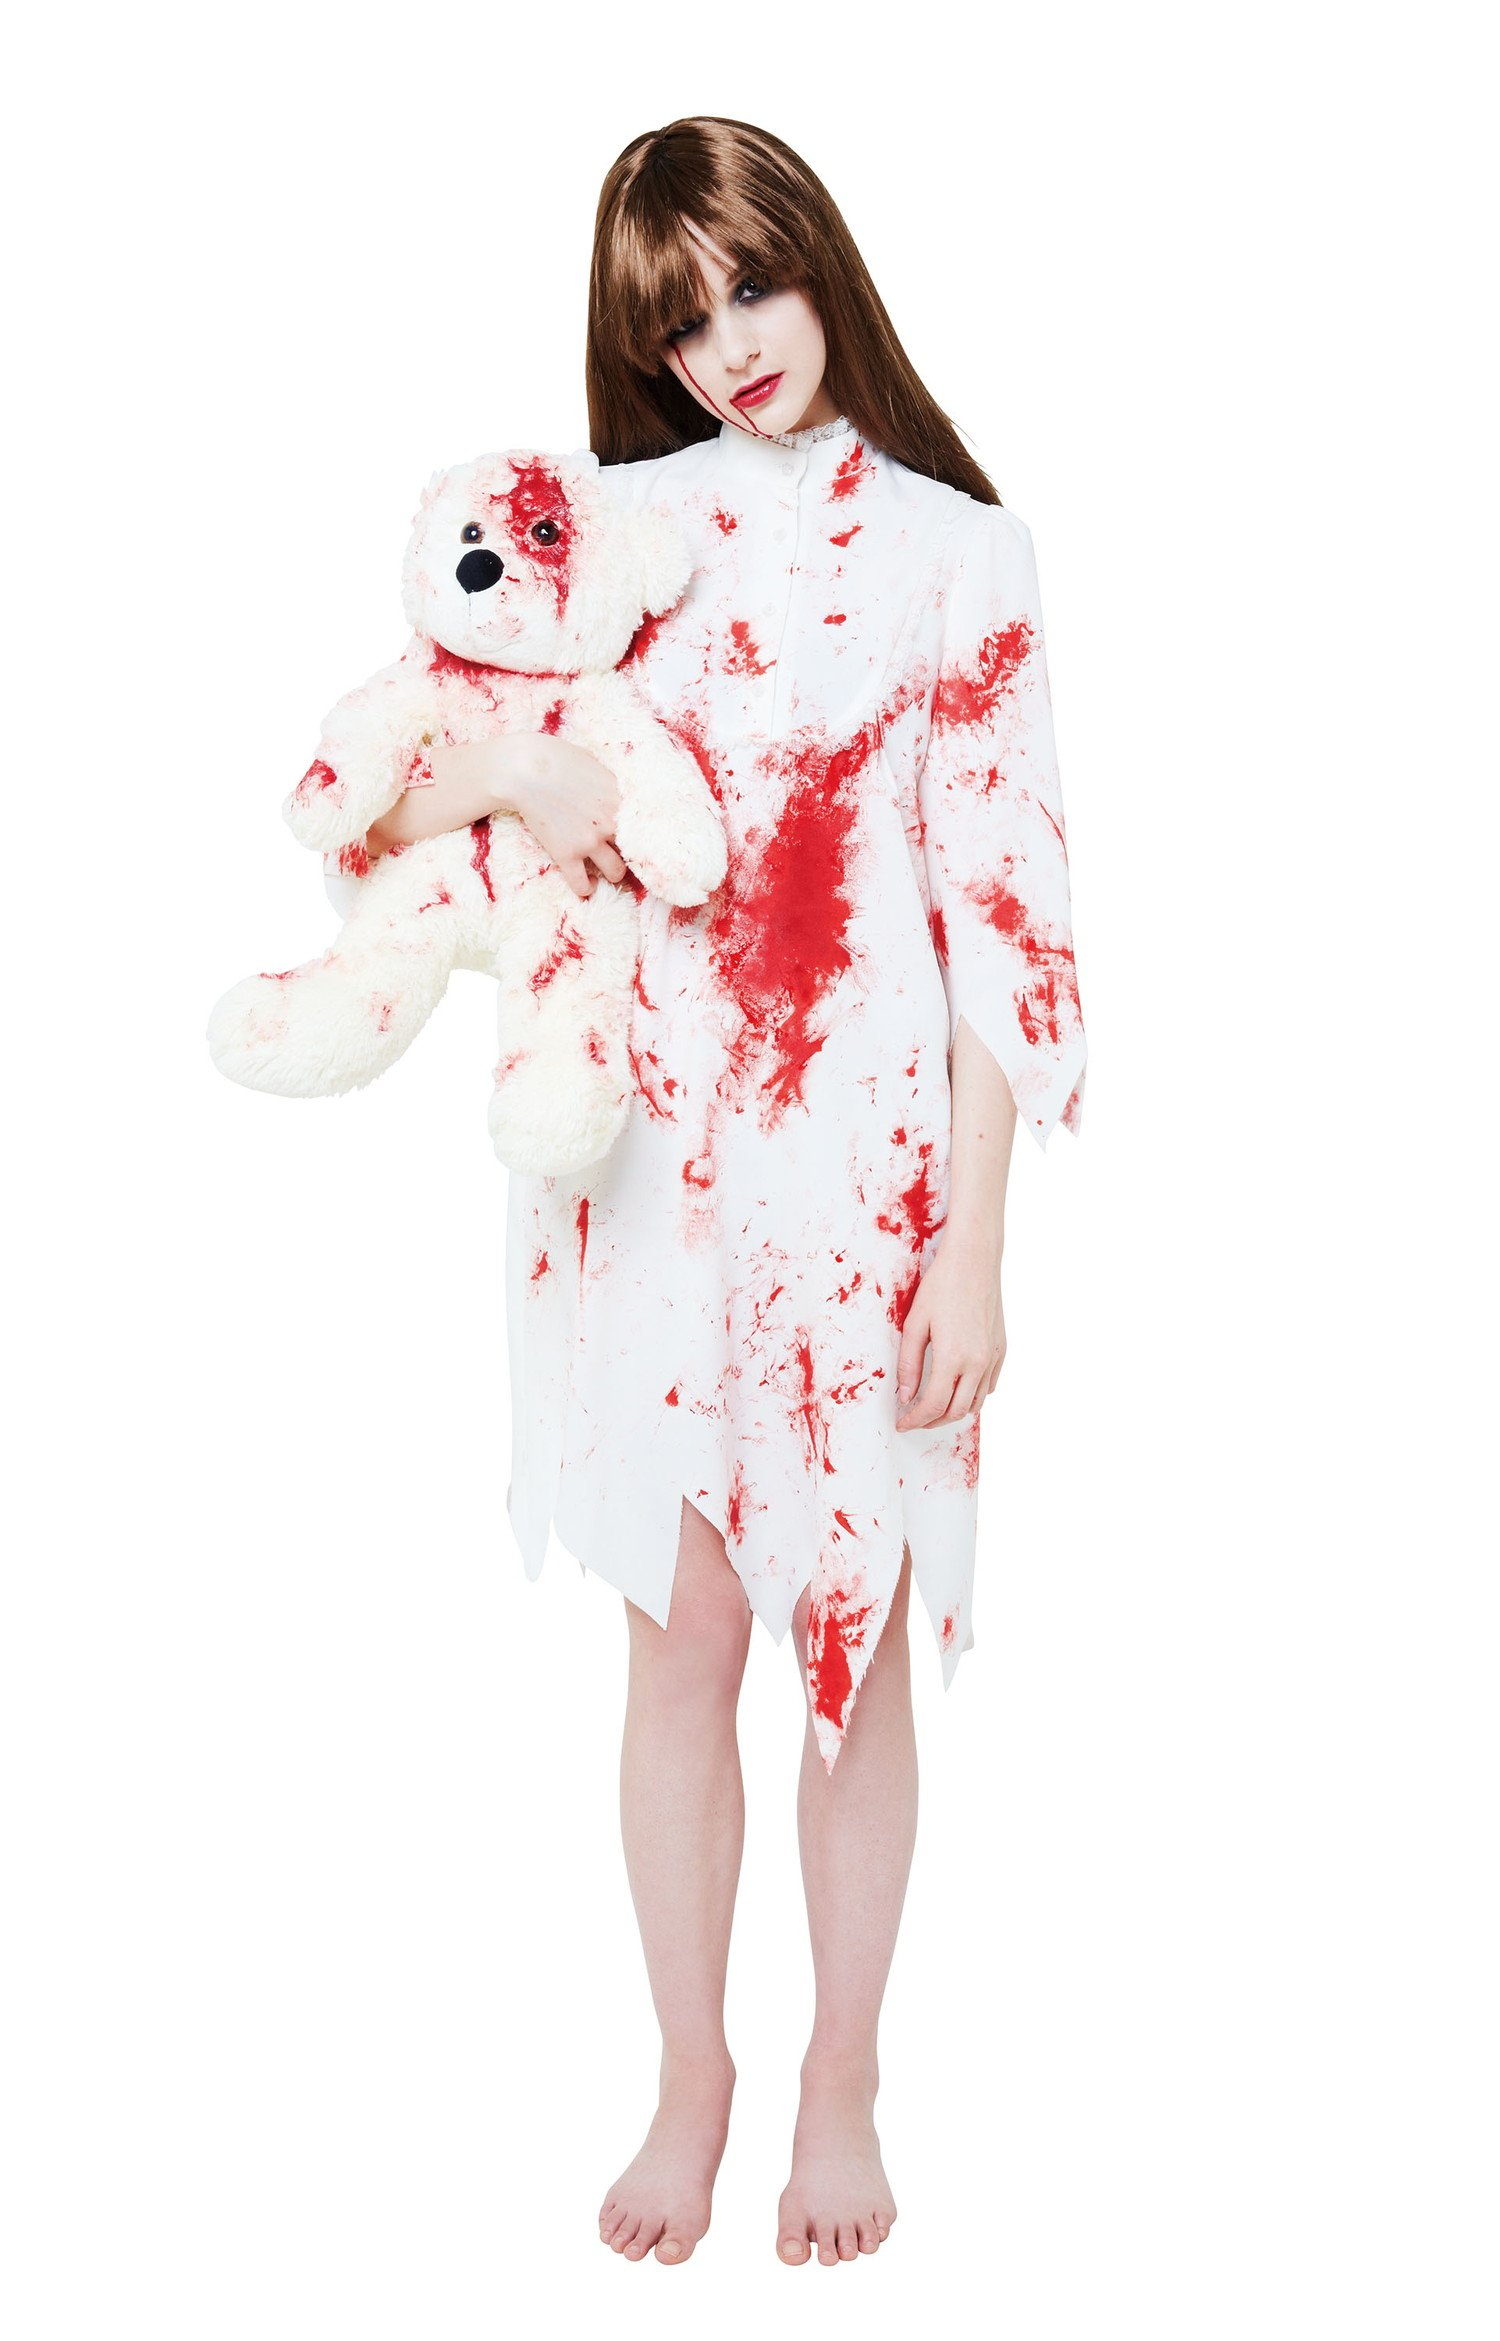 BLOODY bloody little girl outfit Womens 155 cm-165 cm genuine stone